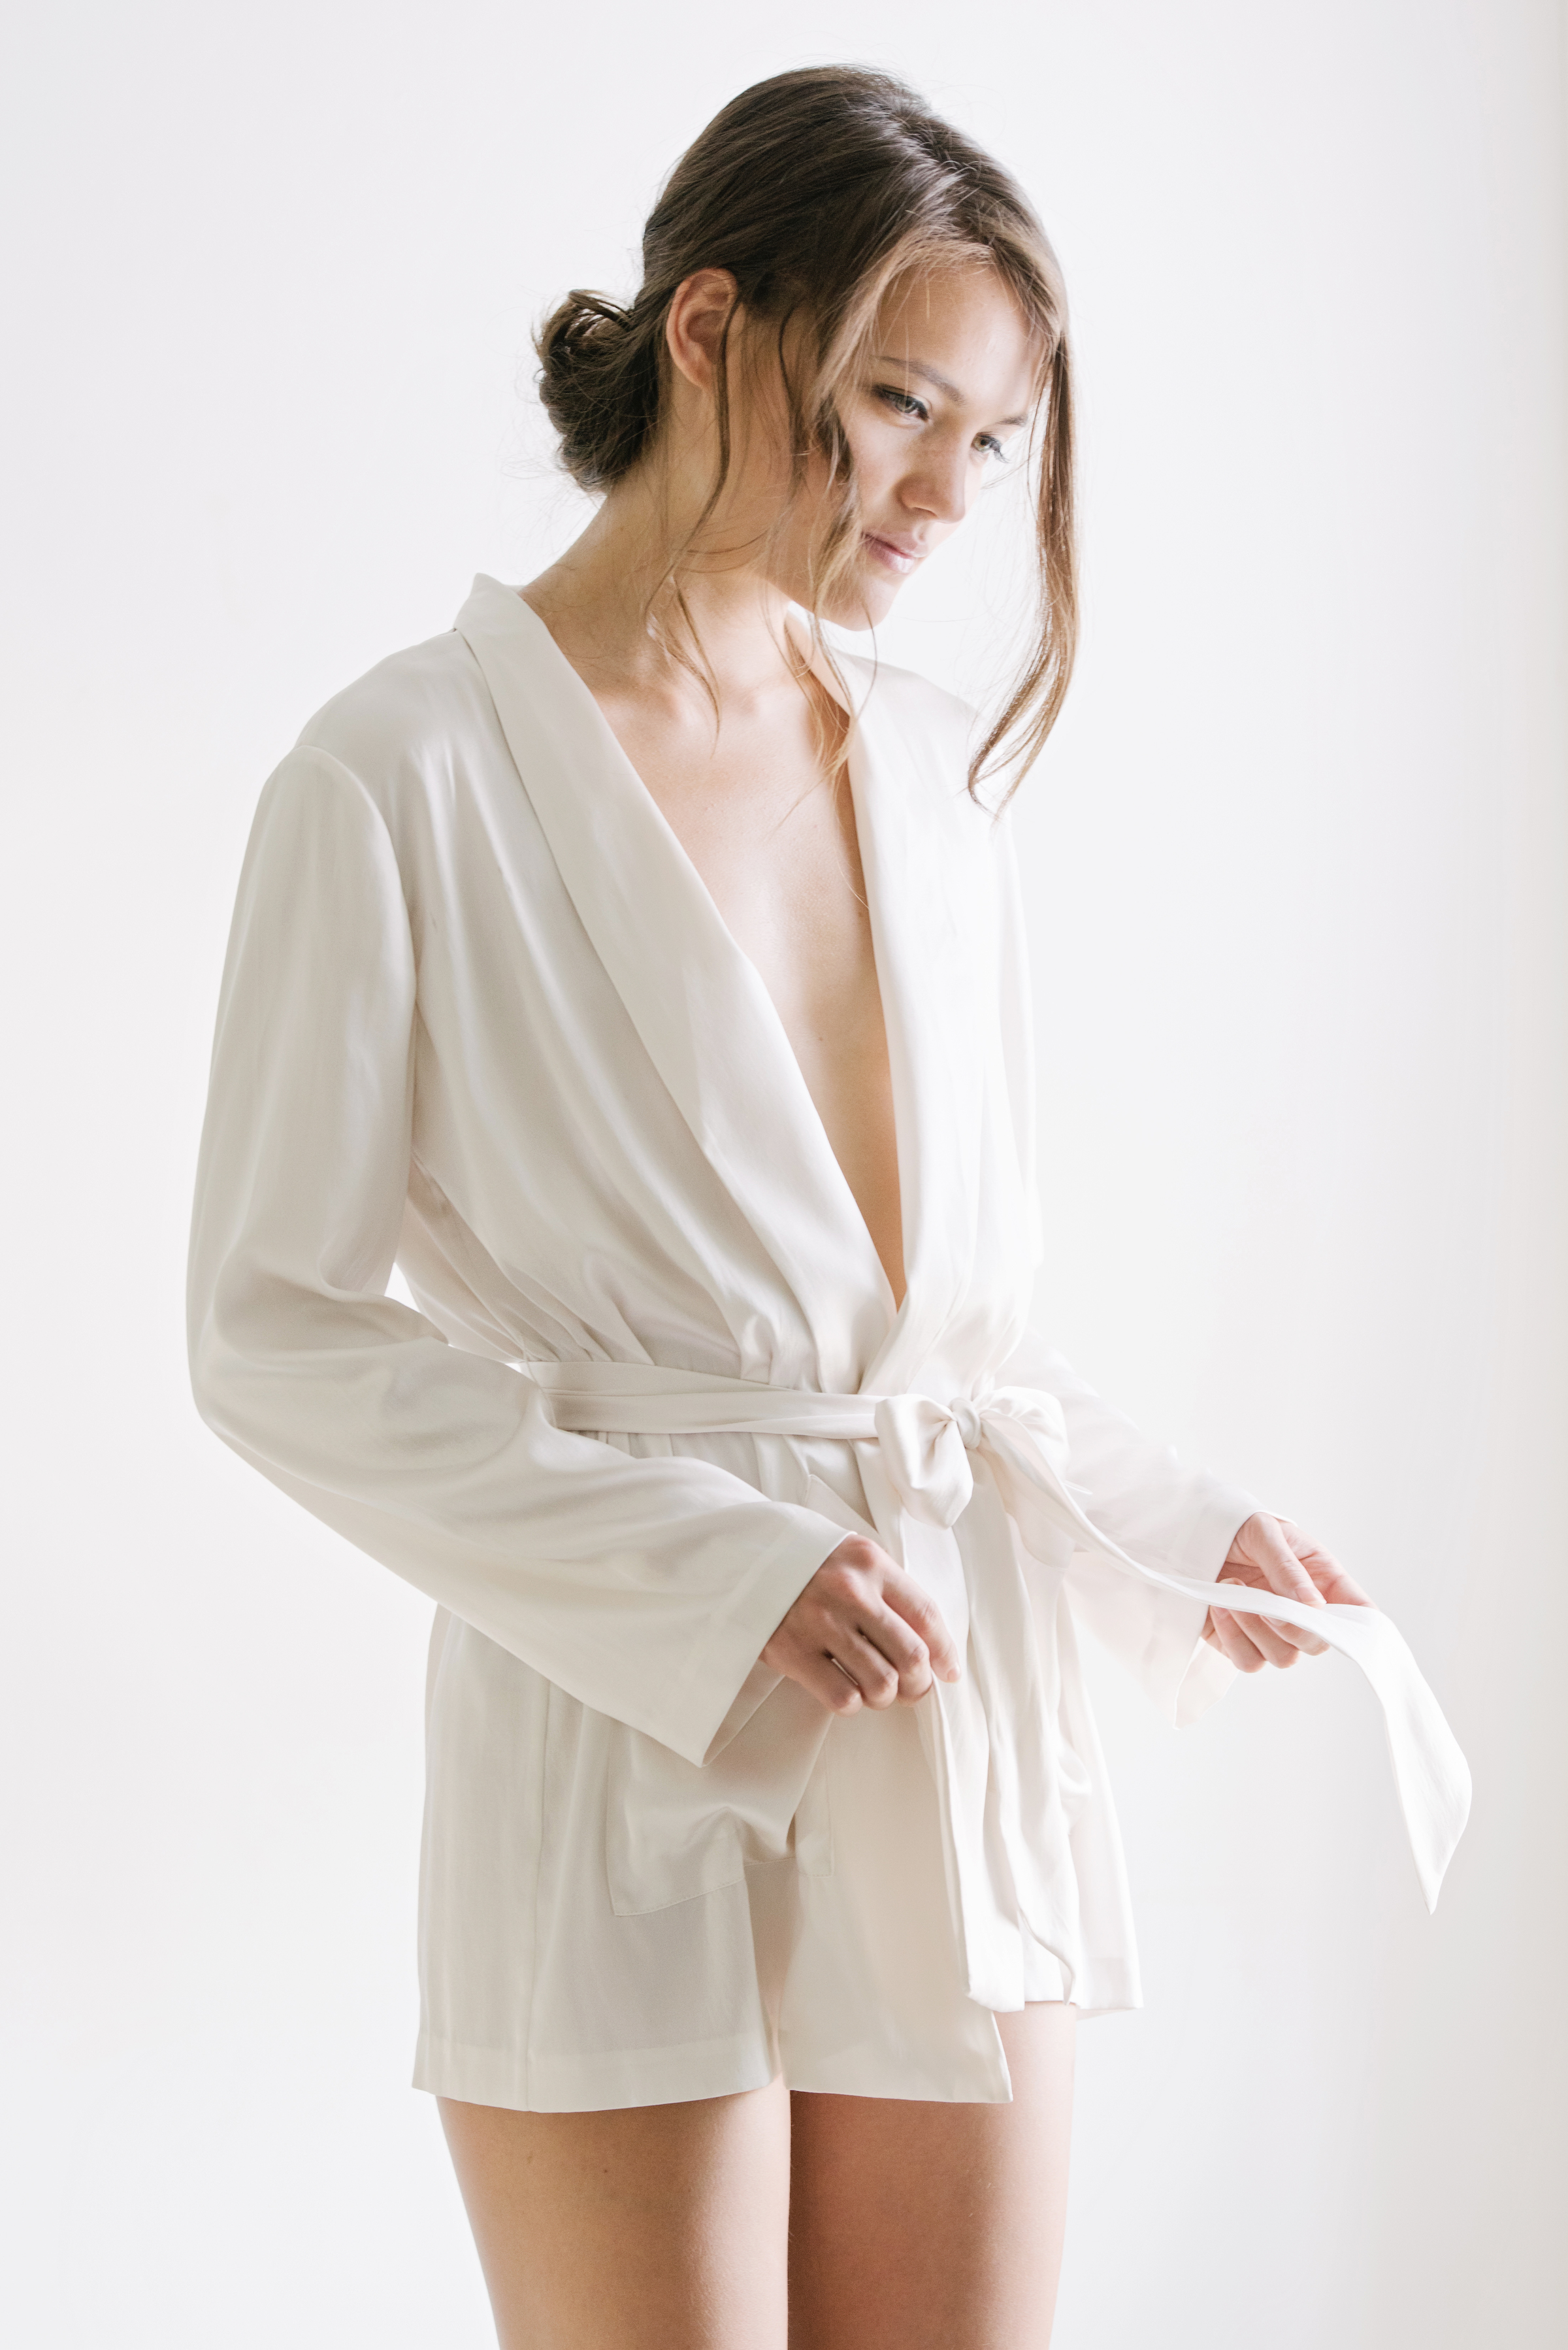 "Nusa Silk Robe by MaggieWu Studio - This silk robe is a great choice for new moms because not only would they feel so comfortable wearing it this summer, they will look presentable when people come by the house to visit. Plus, it's very easy to ""unwrap"" and open when it's time to breast feed the little hungry one!Later on, this robe can be styled for various occasions, making it a very versatile piece! You can click here to check out how I styled the robe in 7 different ways!You can also personalize the robe by adding initials, too.Photo: Courtesy of Maggie Wu Studio."